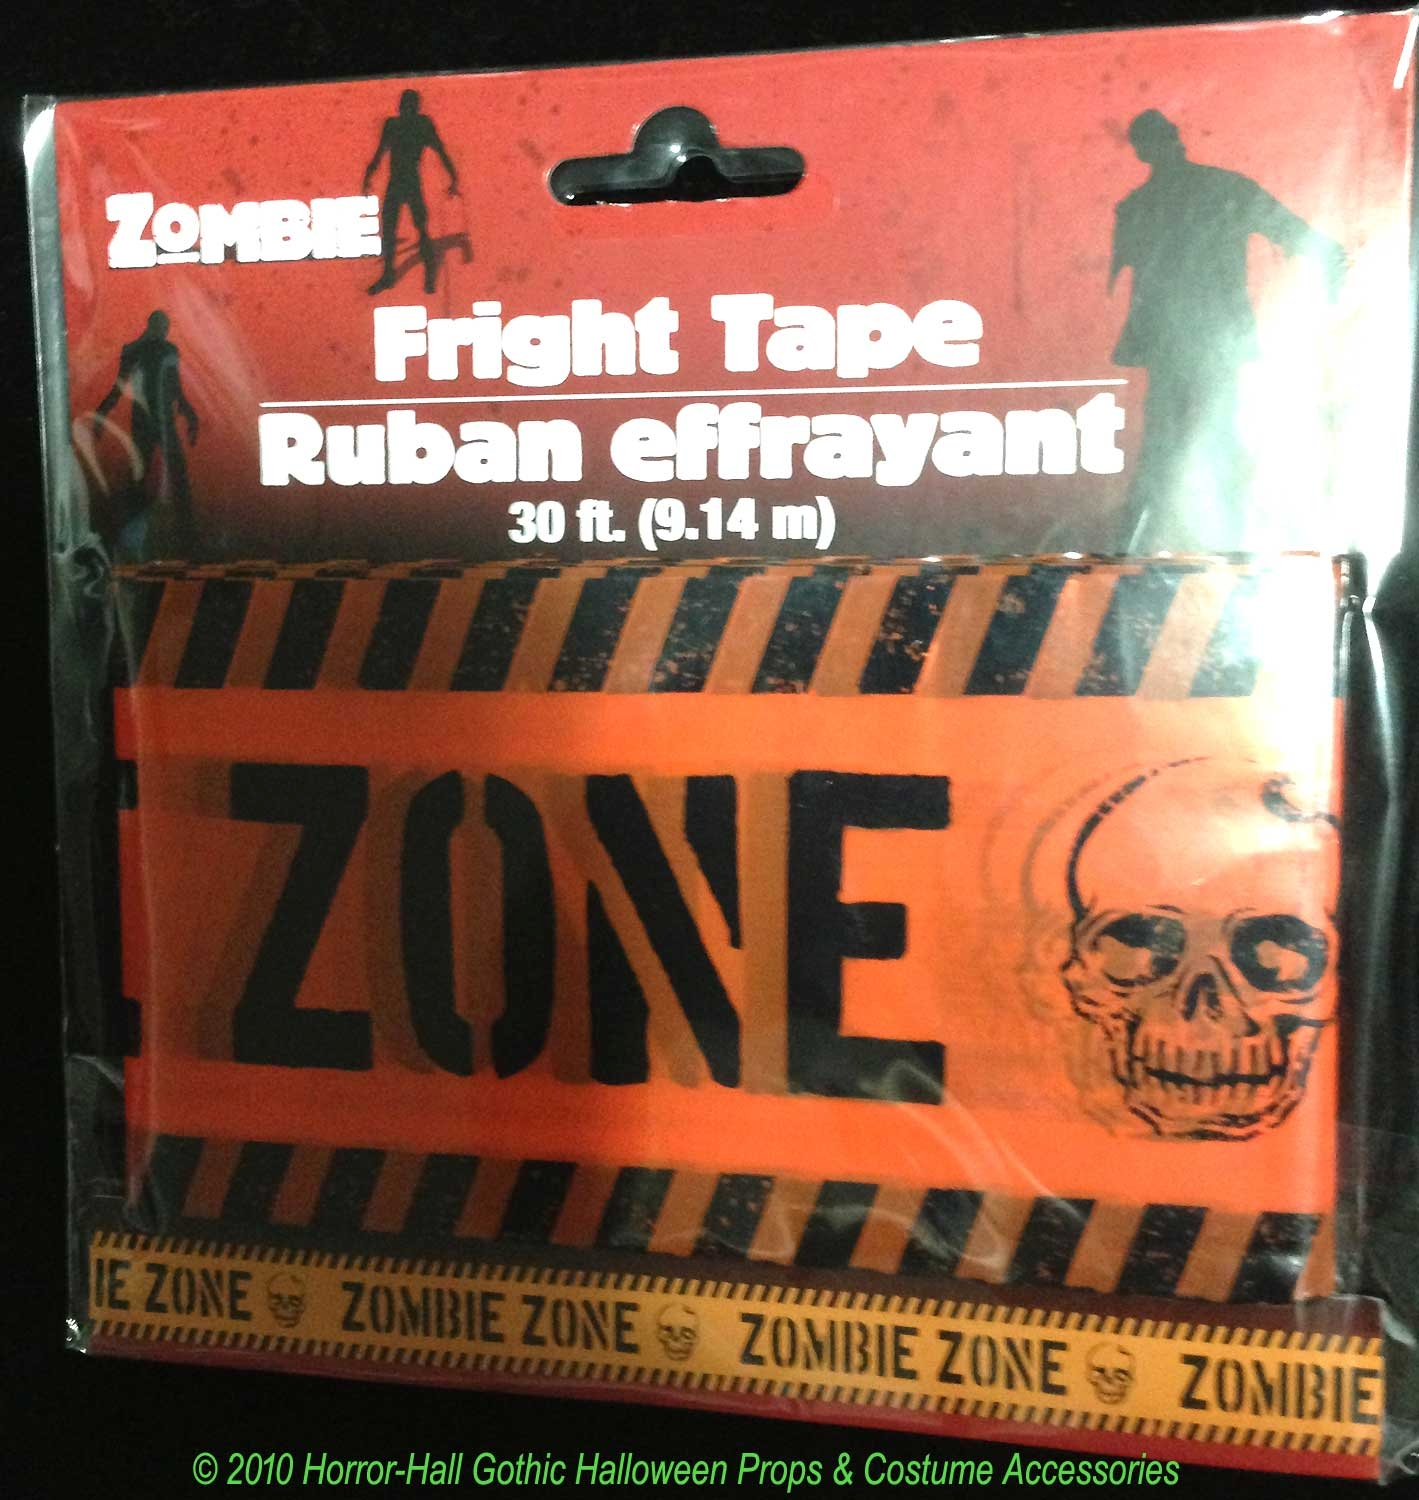 spooky graveyard walking dead zombie zone barricade fright caution tape haunted house - Discount Halloween Decor